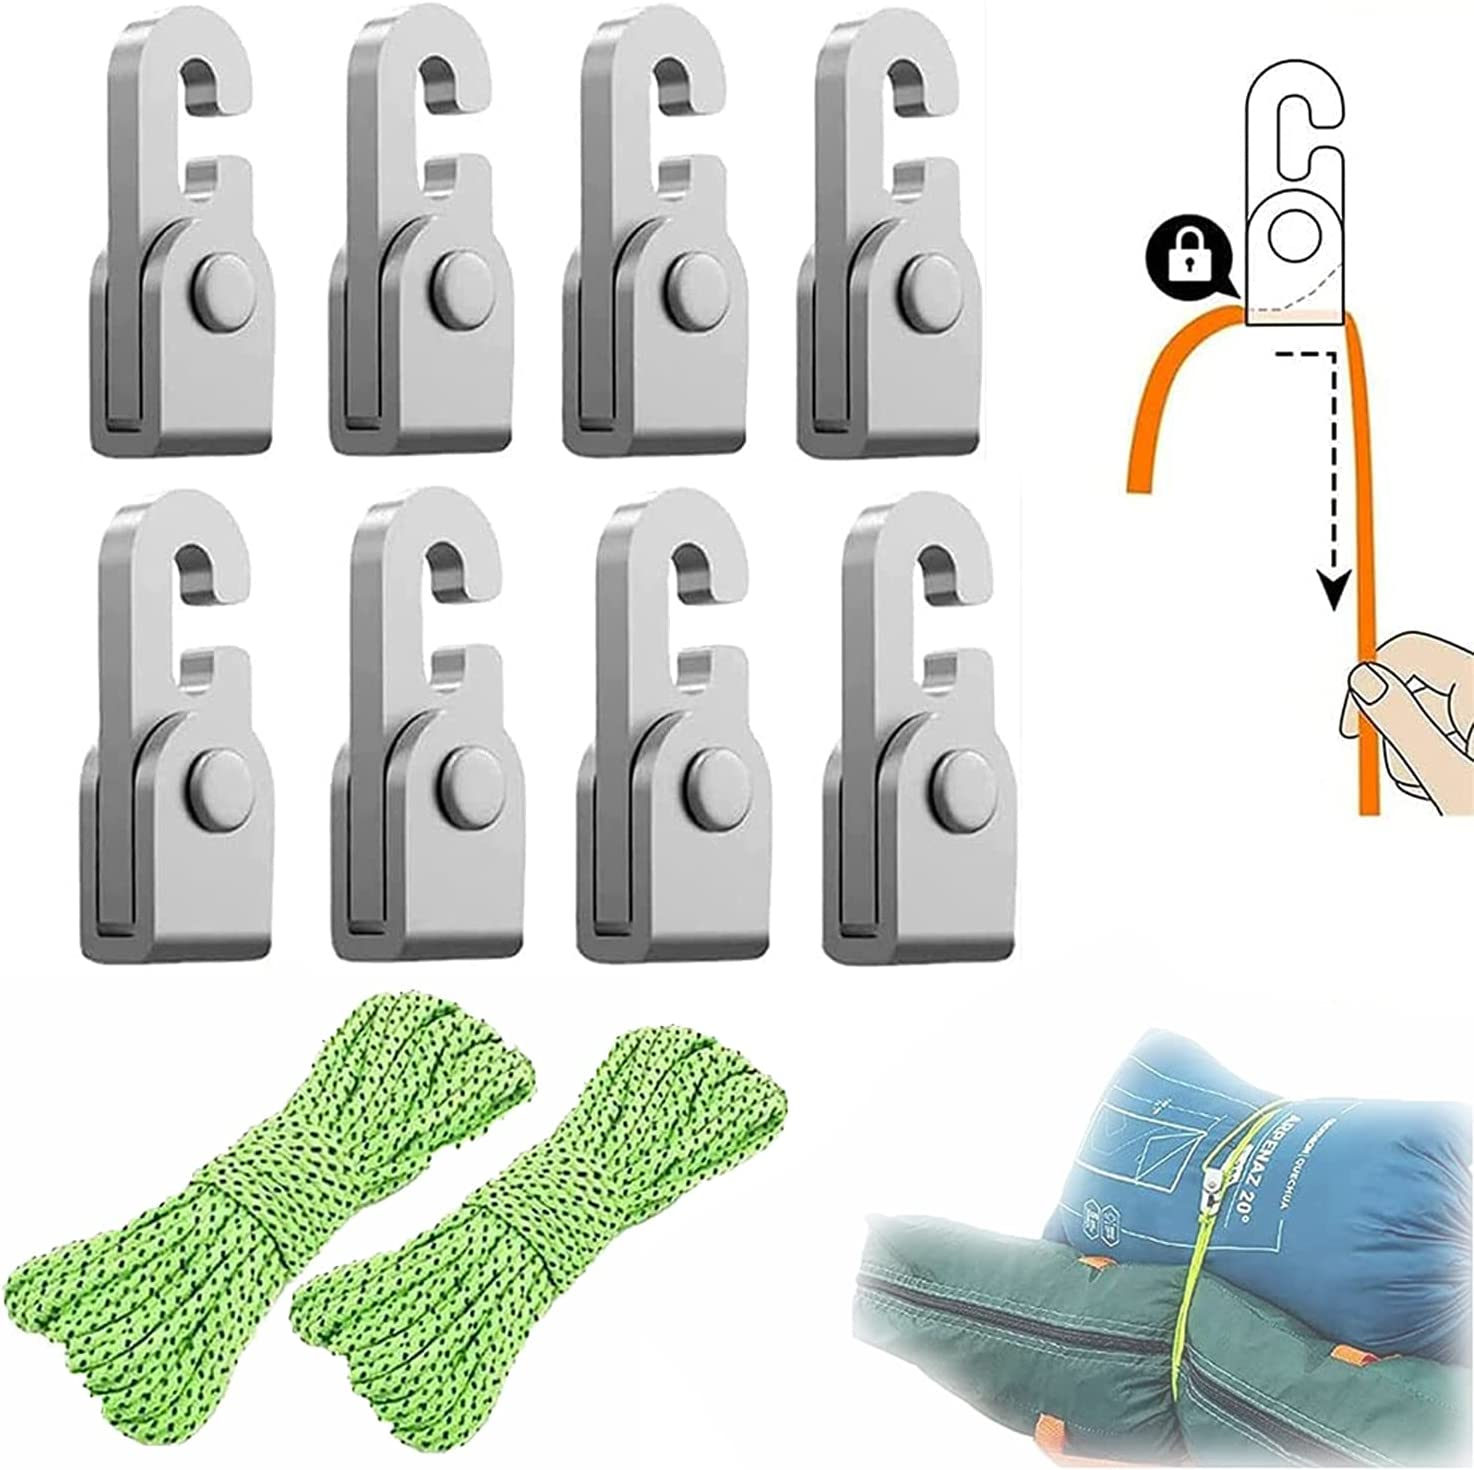 4pcs Year-end gift Pack Automatic Lock Hook Knot Easy Free Self-Locking Tighte Finally resale start